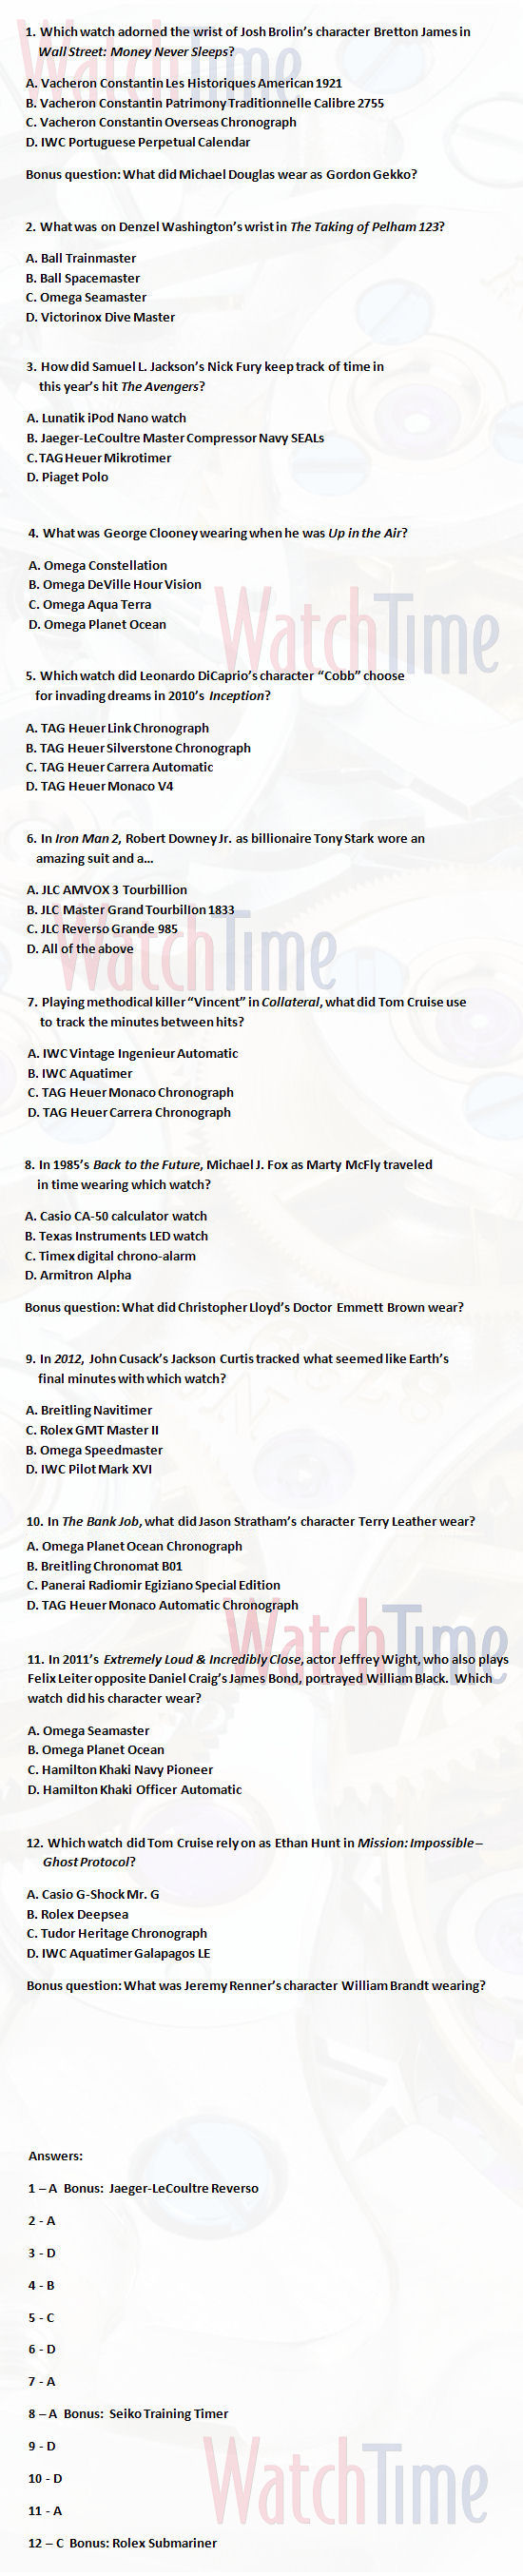 Free Picture Quiz Questions And Answers 2012